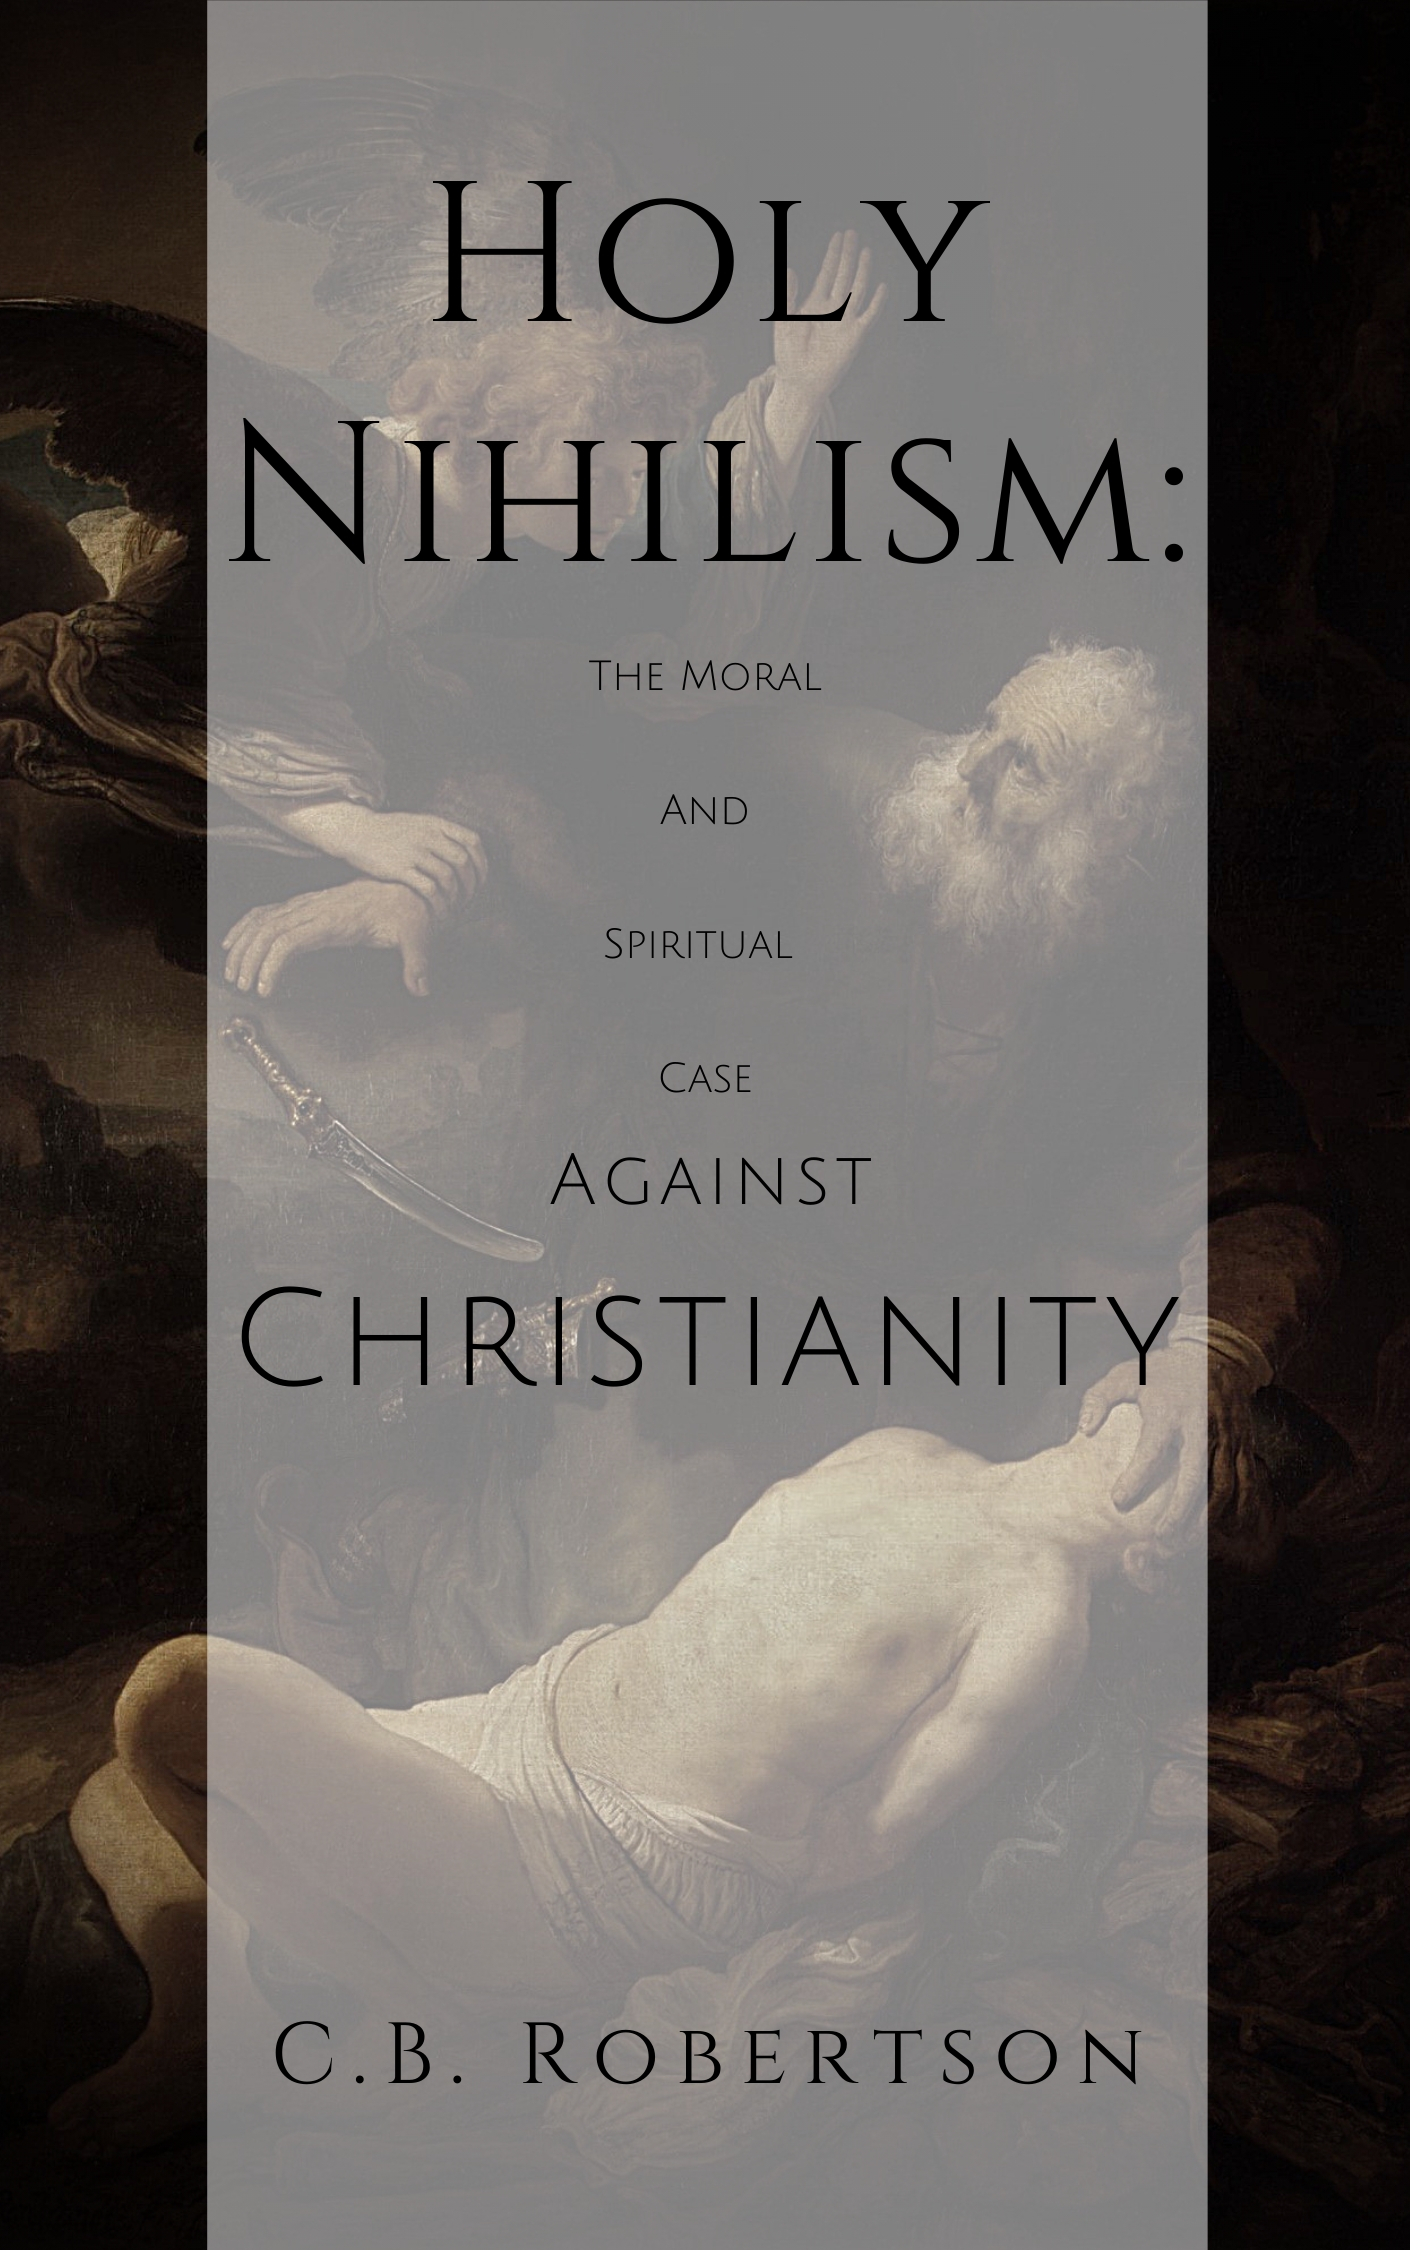 NEW: Holy Nihilism Published on Kindle